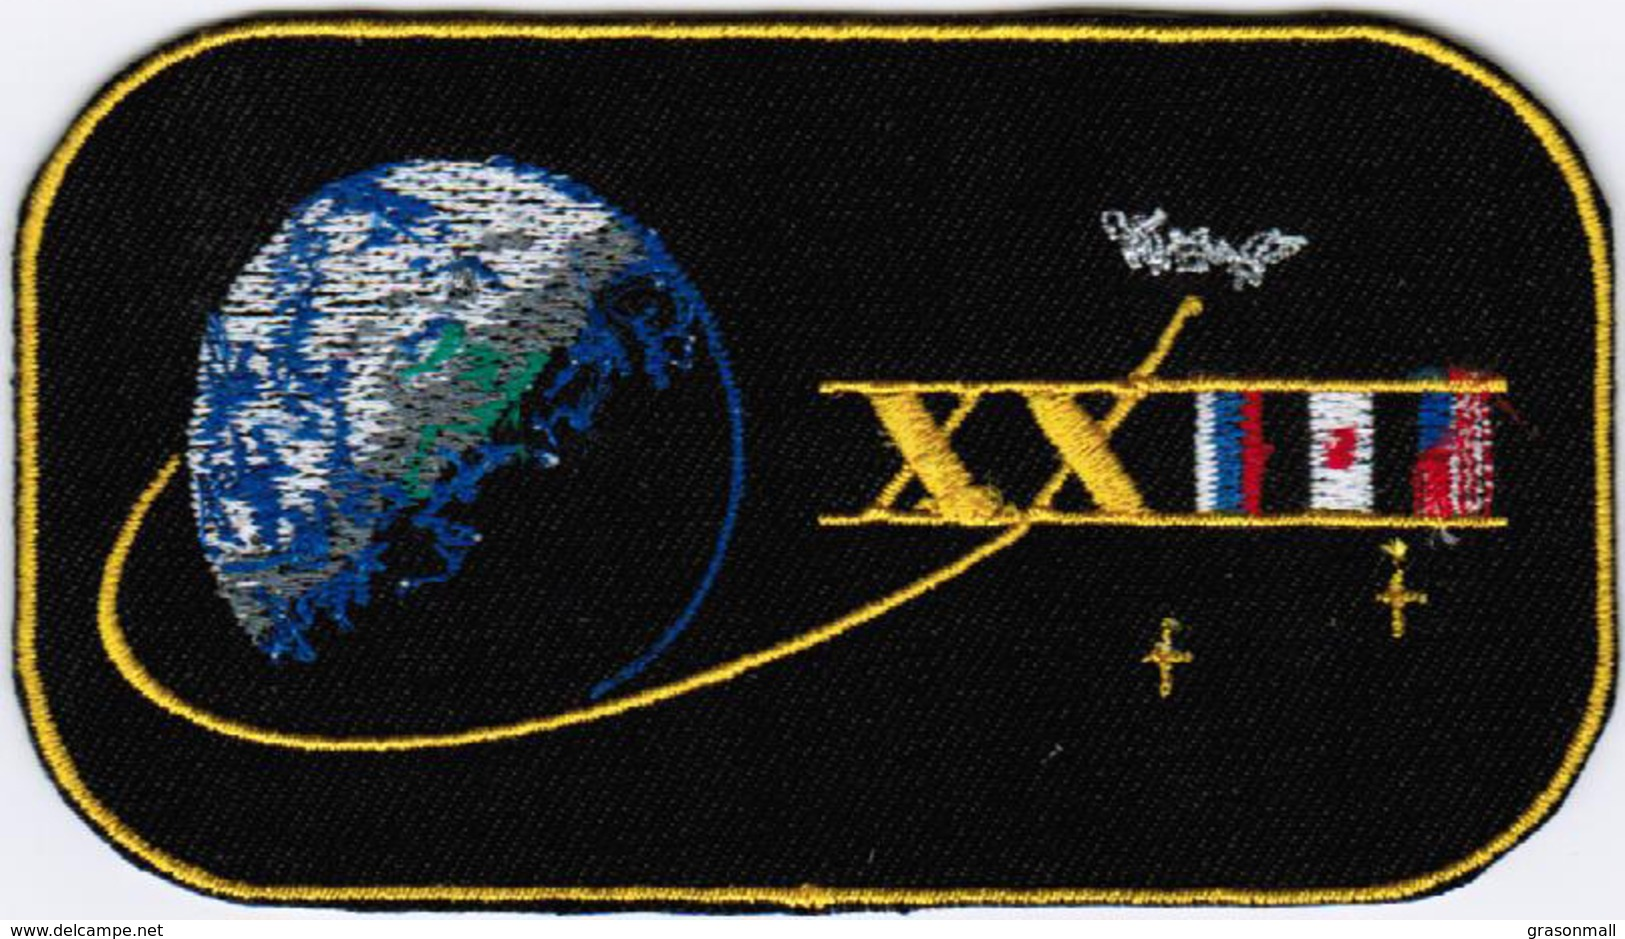 ISS Expedition 23 #NoWords International Space Station Iron On Patch - Patches